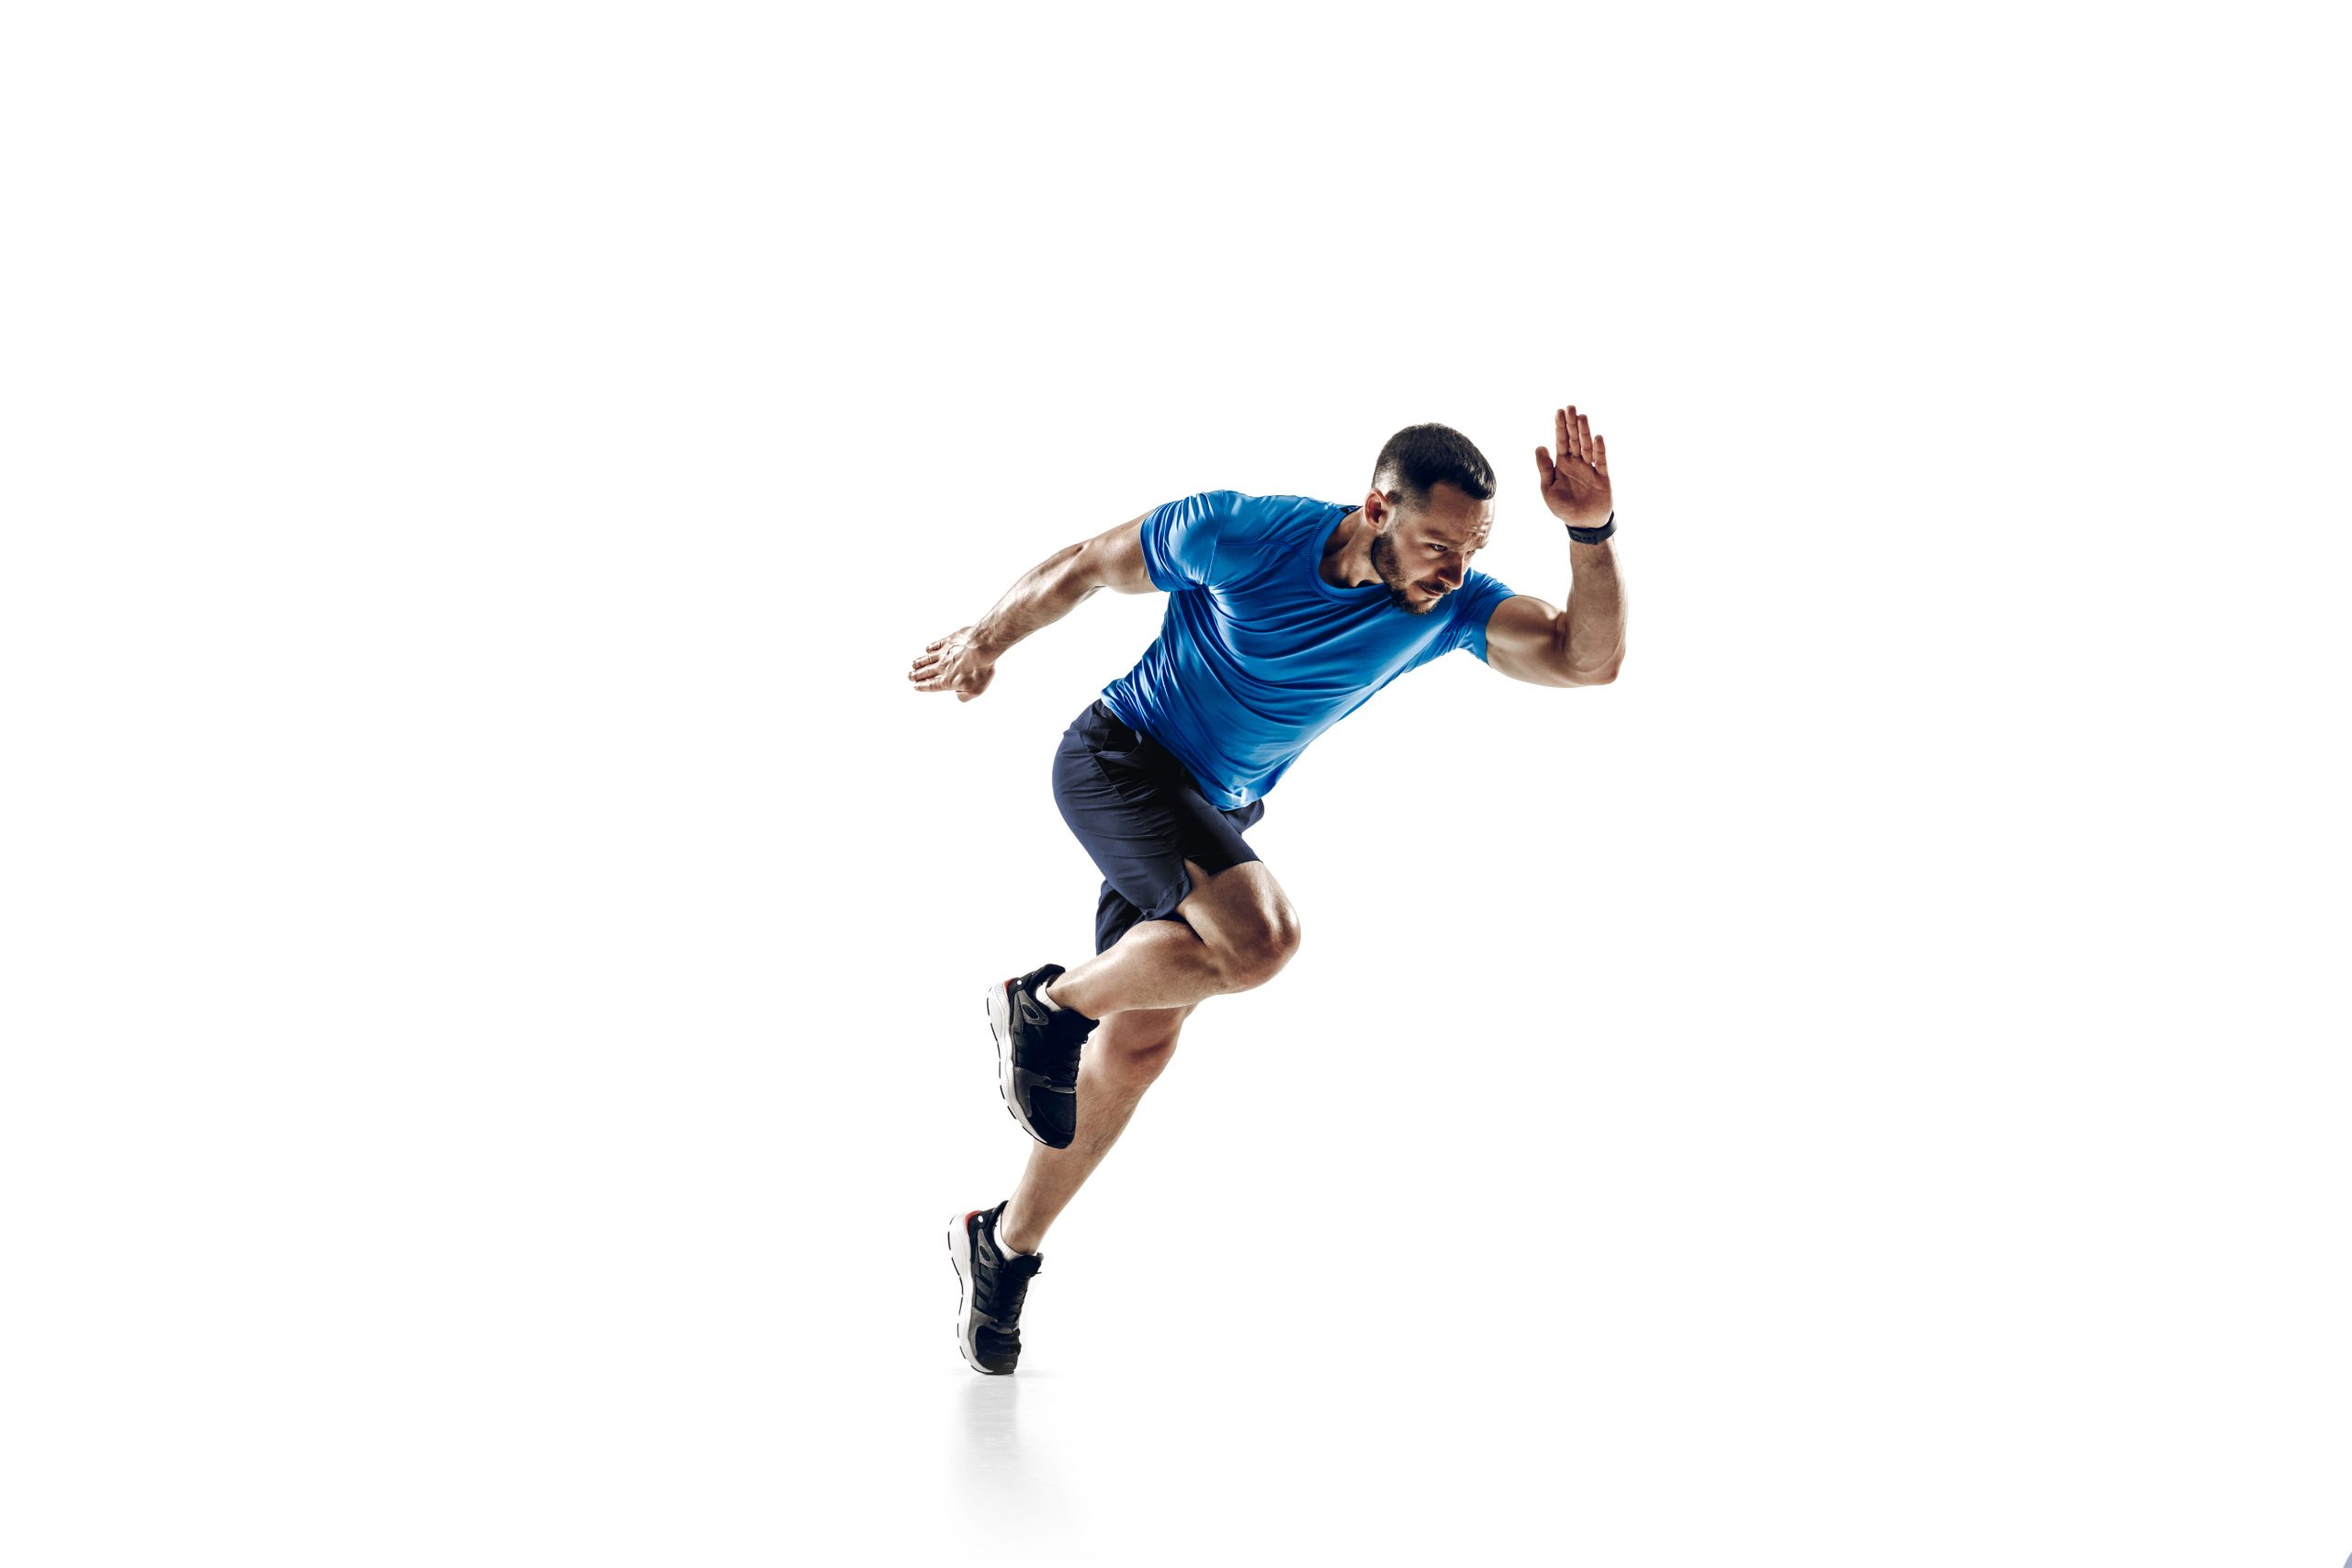 Caucasian professional male runner, athlete training isolated on white studio background. Copyspace for ad.